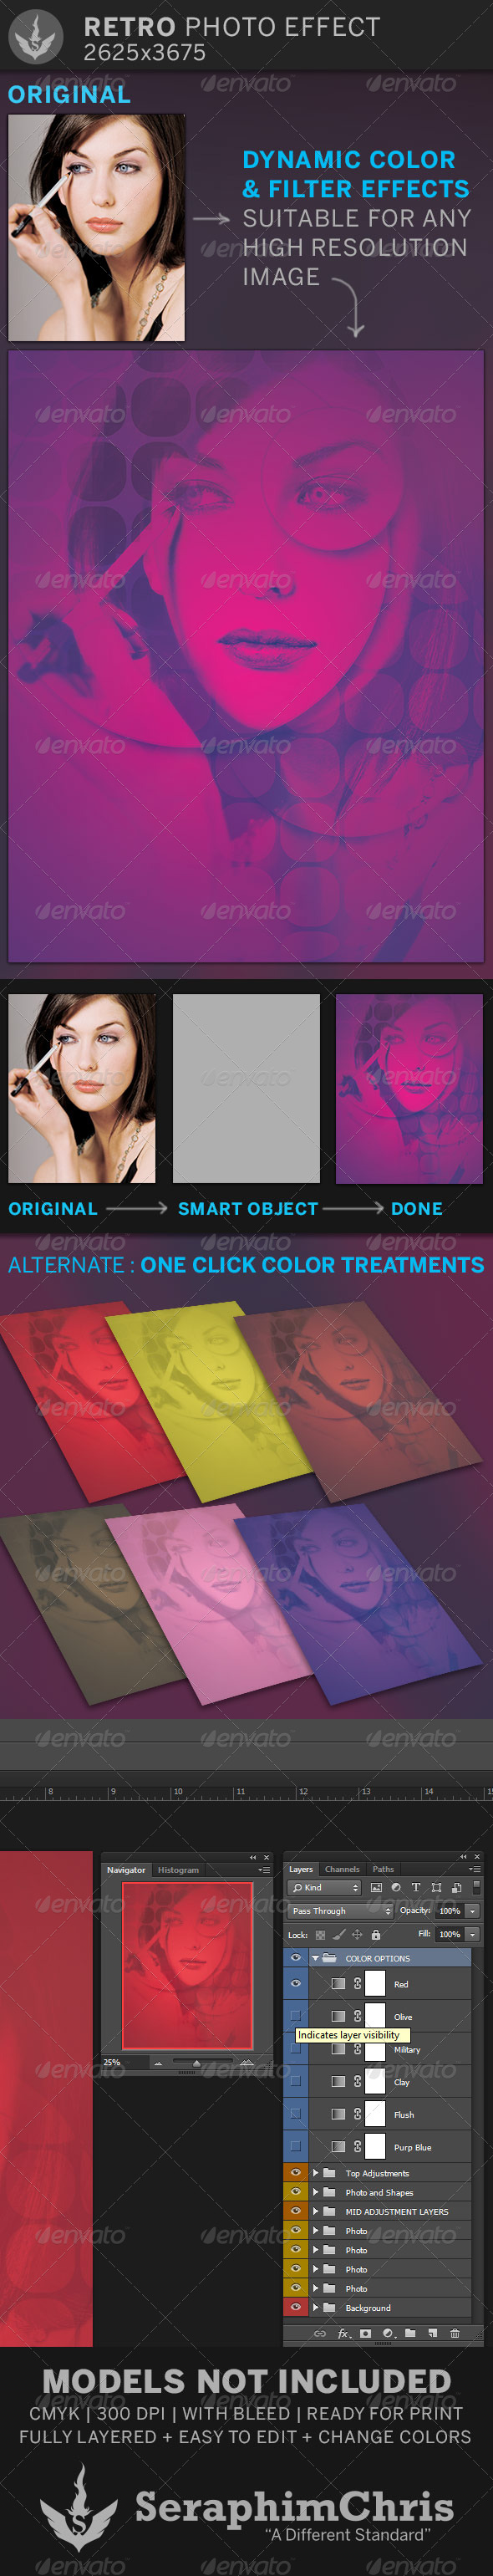 Retro Photo Effect Template - Photo Templates Graphics